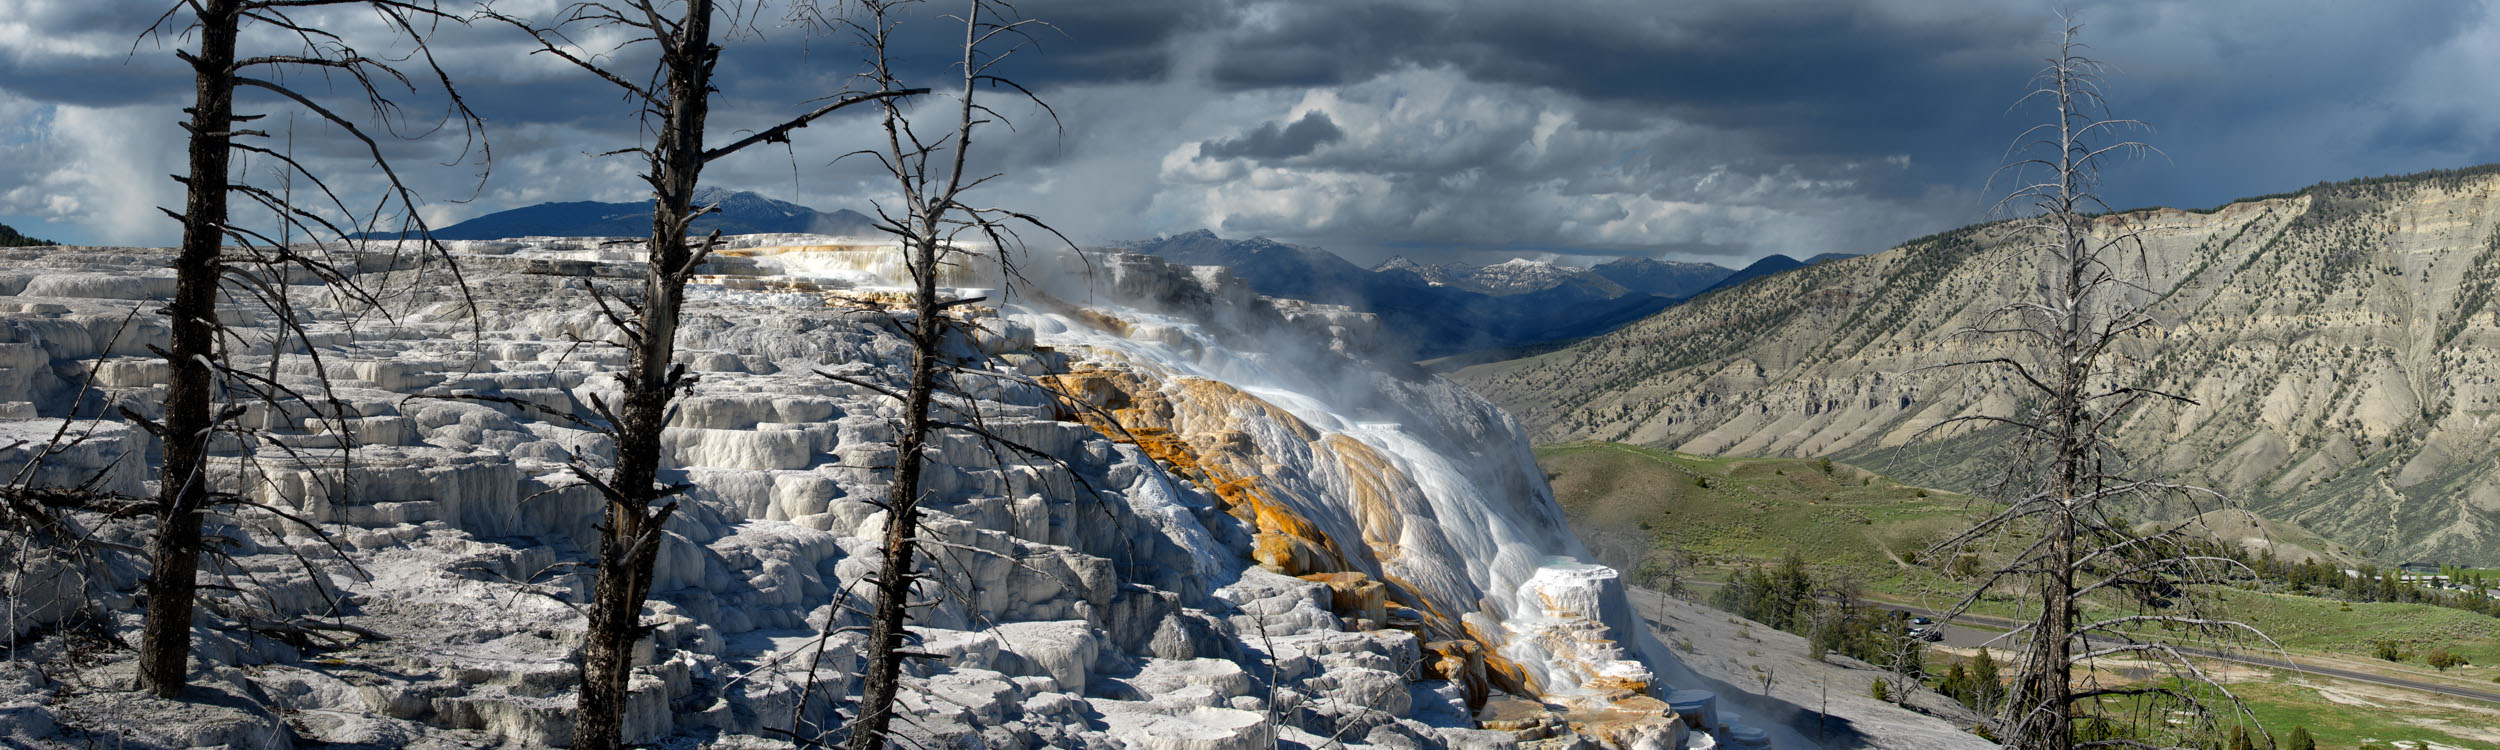 Canary Springs, Yellowstone NP